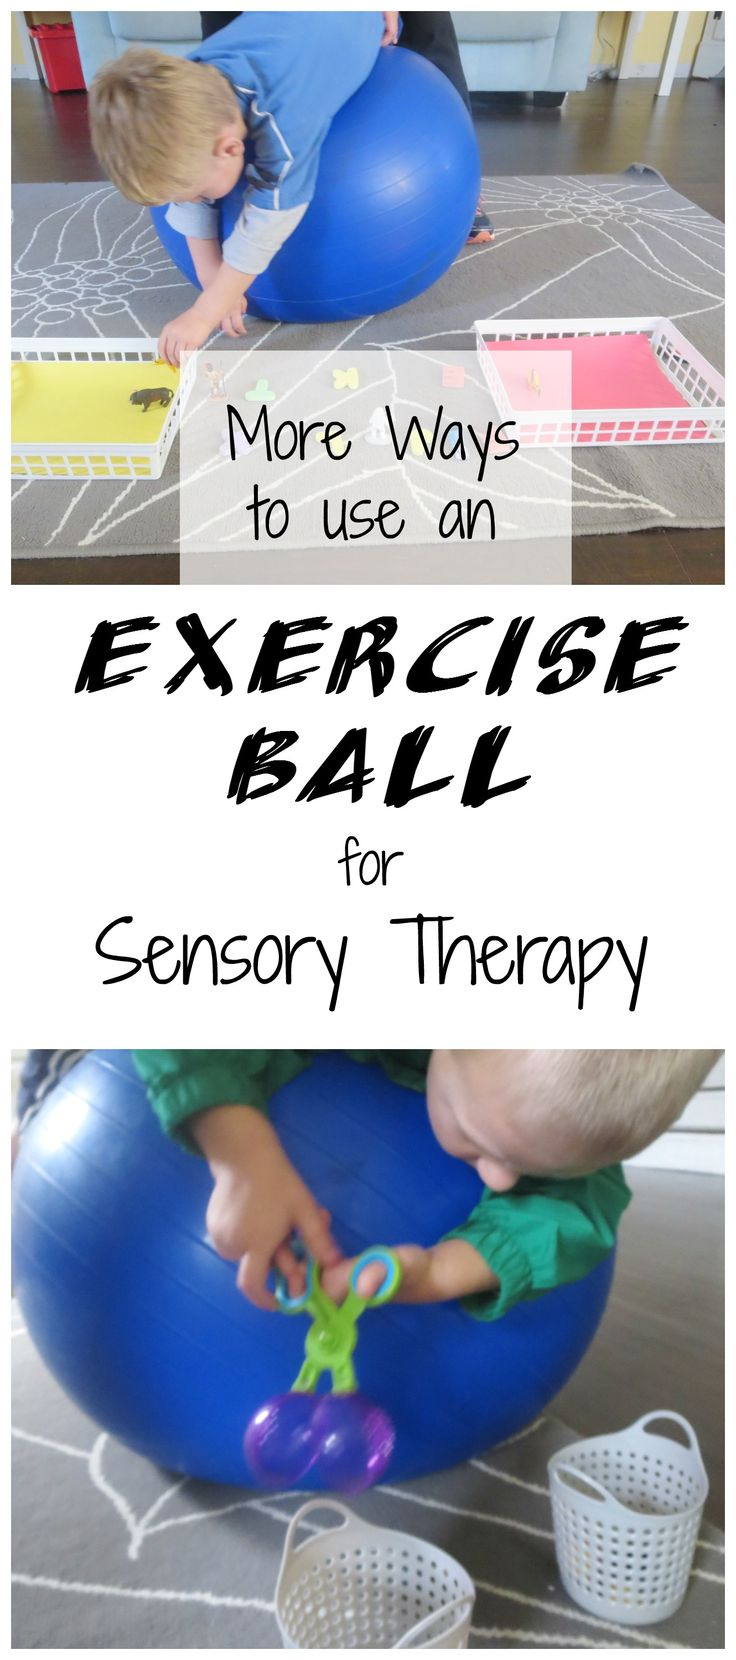 Buysell physical therapy equipment - An Exercise Ball Is Great For Kids With Sensory Processing Disorder Or Spd These Exercising Challenge The Vestibular System Strengthen The Core